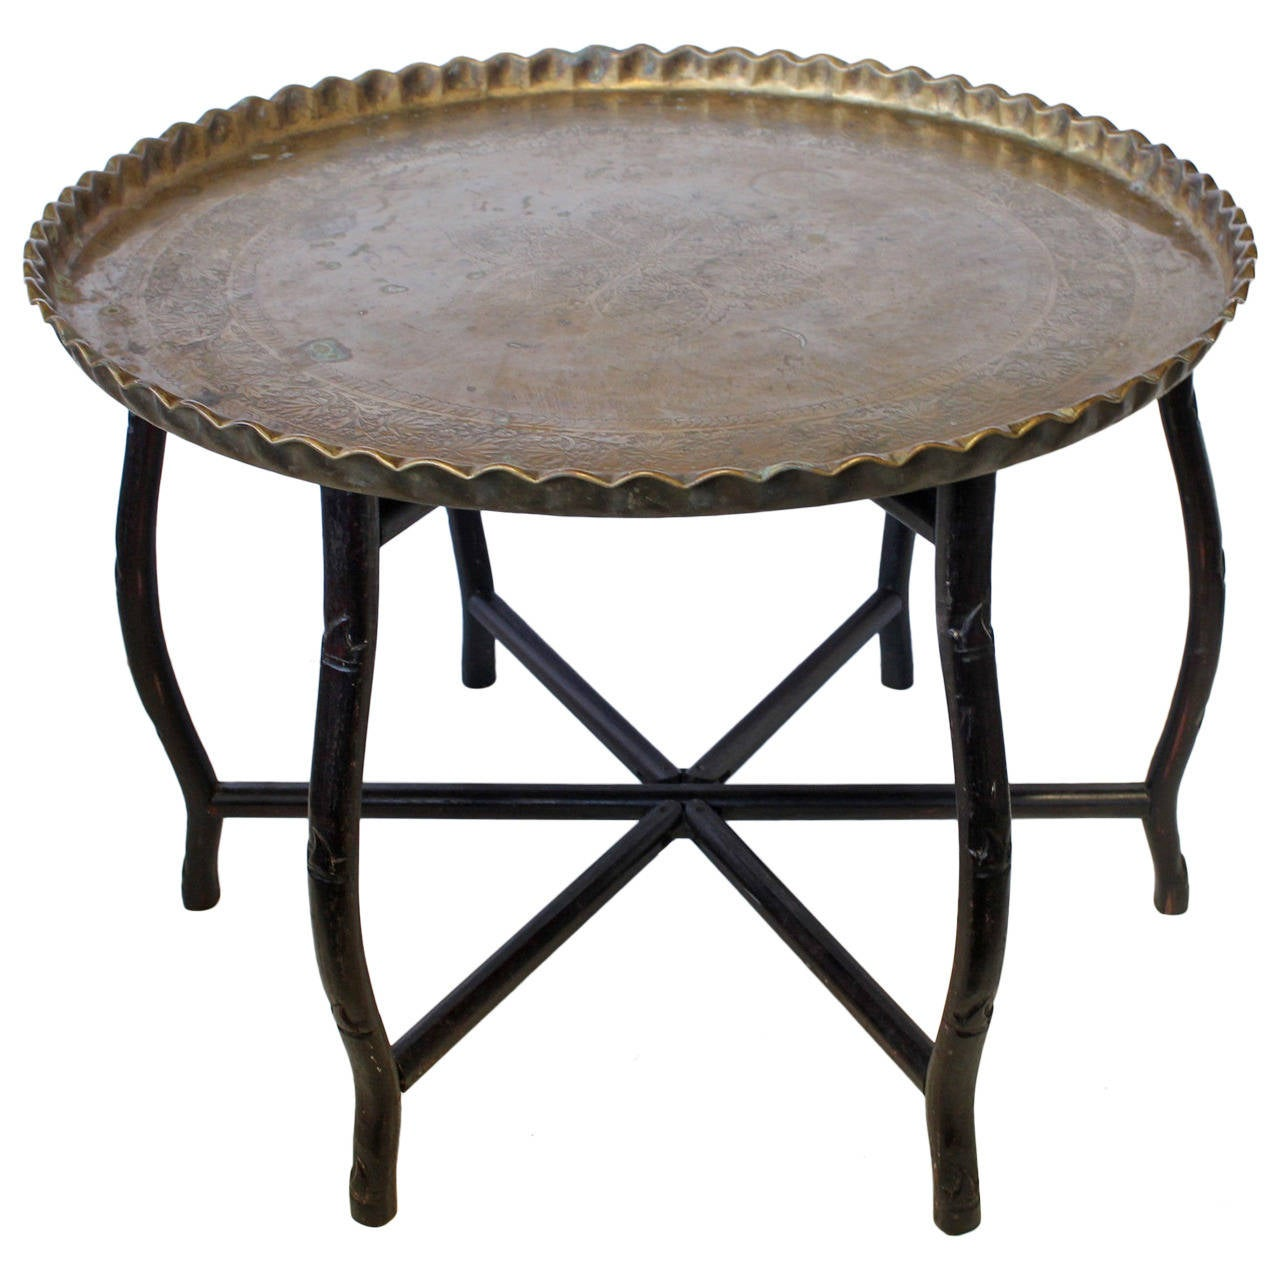 1920s Large Brass Tray Folding Table For Sale At 1stdibs